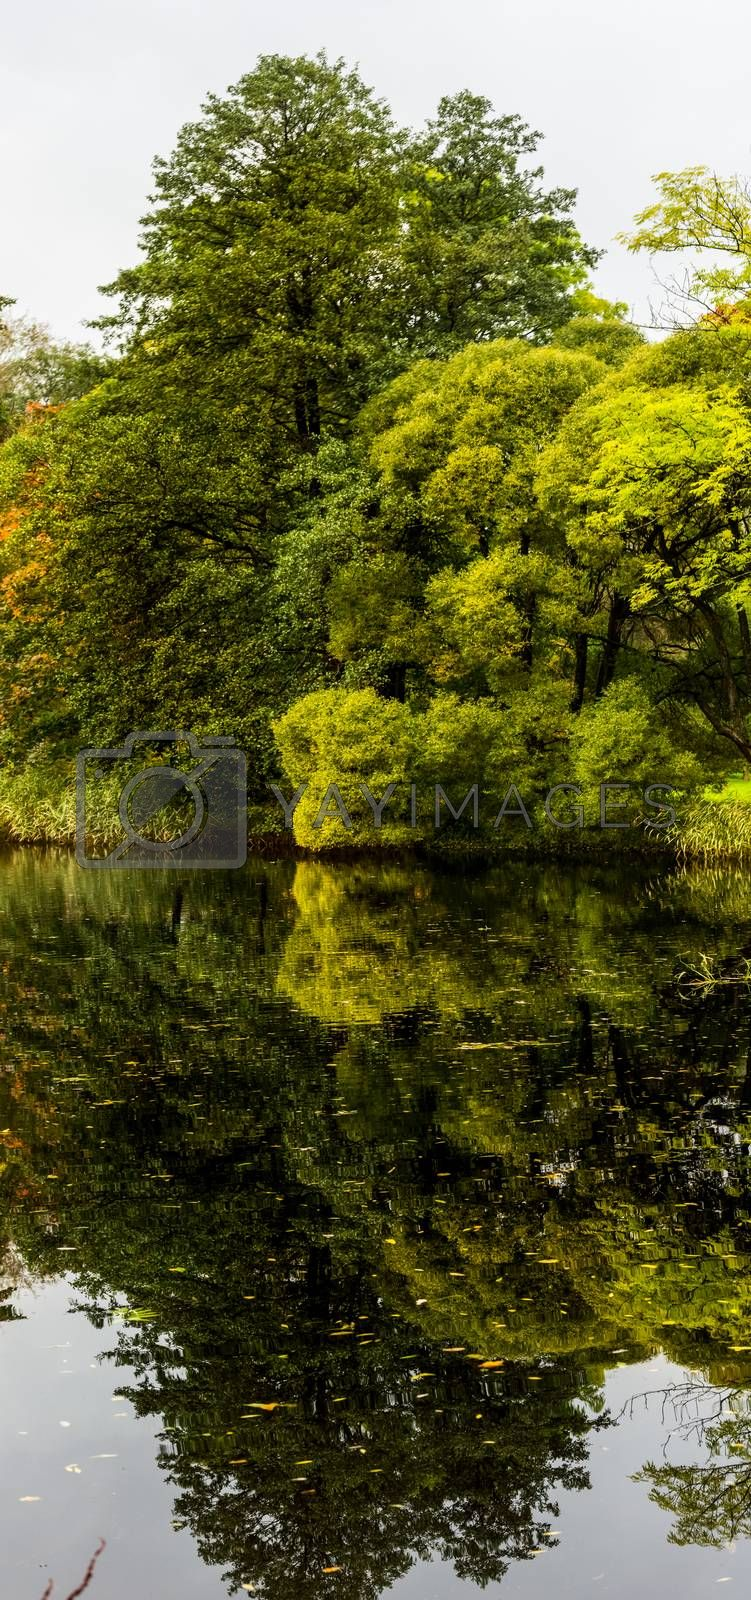 Nature near Peterhof, ponds and forest. Nature near Peterhof, ponds and forest